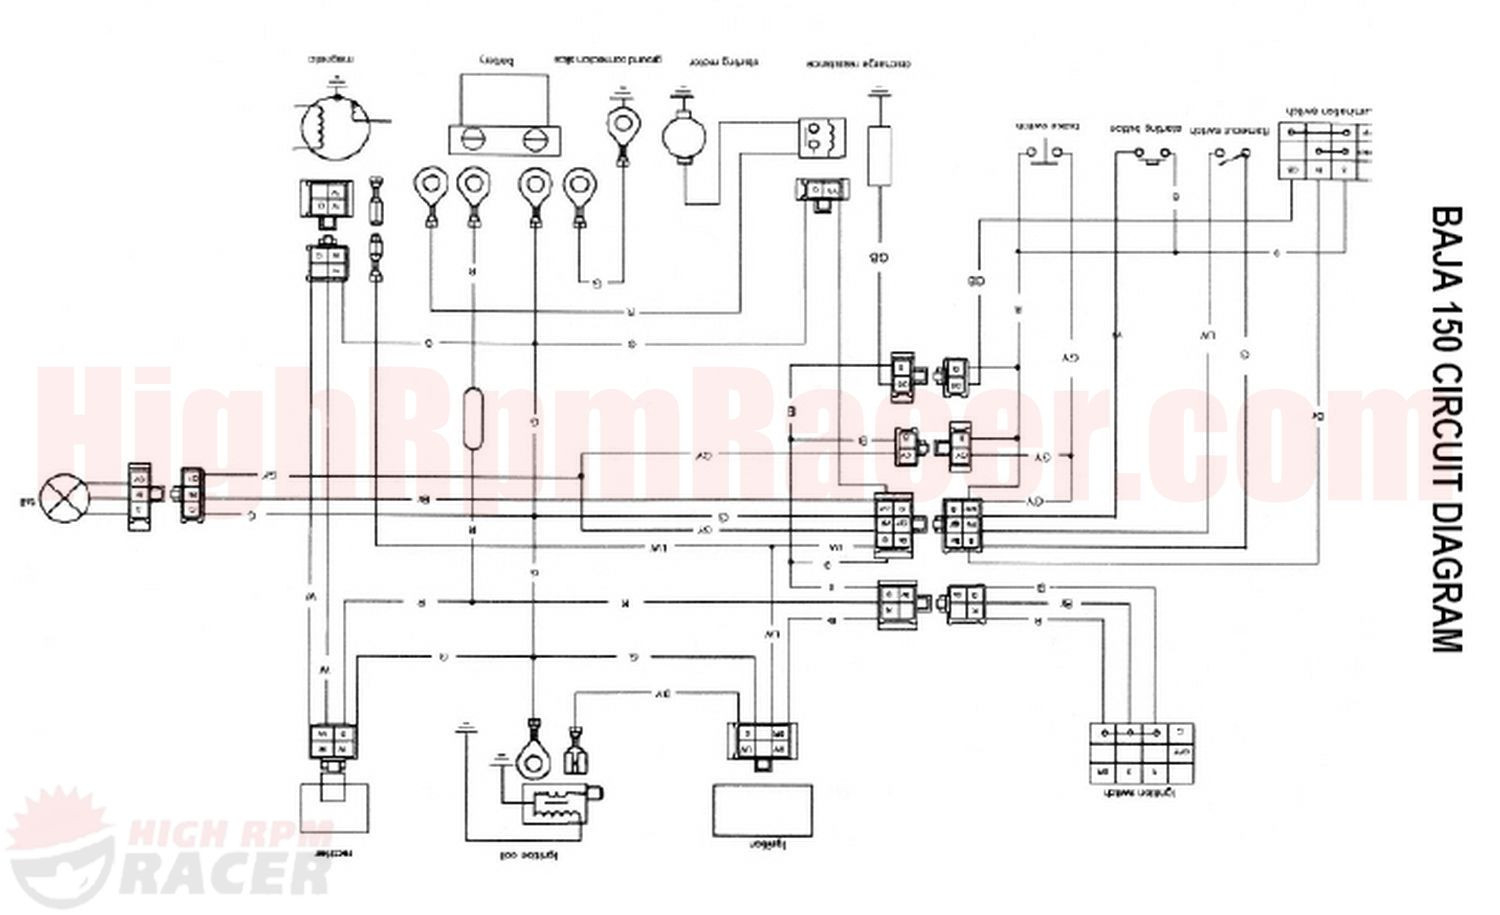 kazuma 50cc wiring diagram coolster 125cc atv wiring diagram collection #1